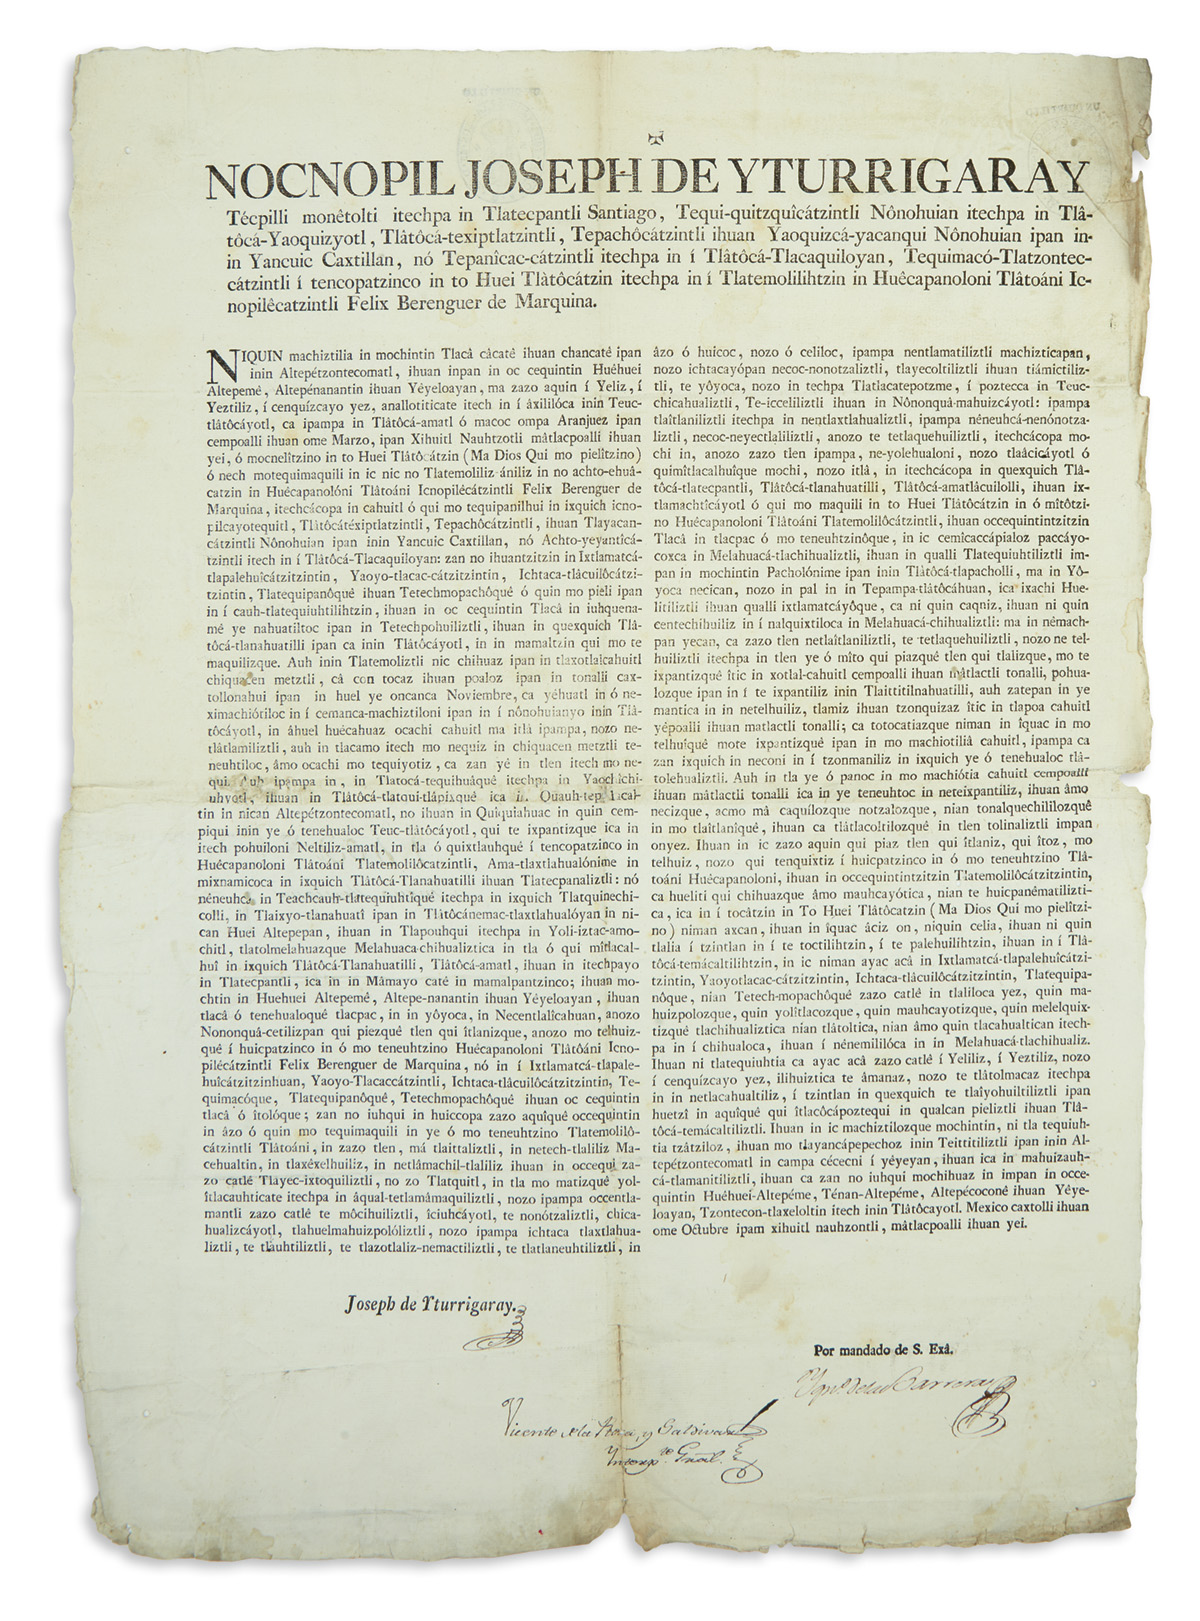 (MEXICAN IMPRINT--1803.) Iturrigaray, José de. Late colonial Nahuatl broadside announcing the tenure of Viceroy Iturrigaray.